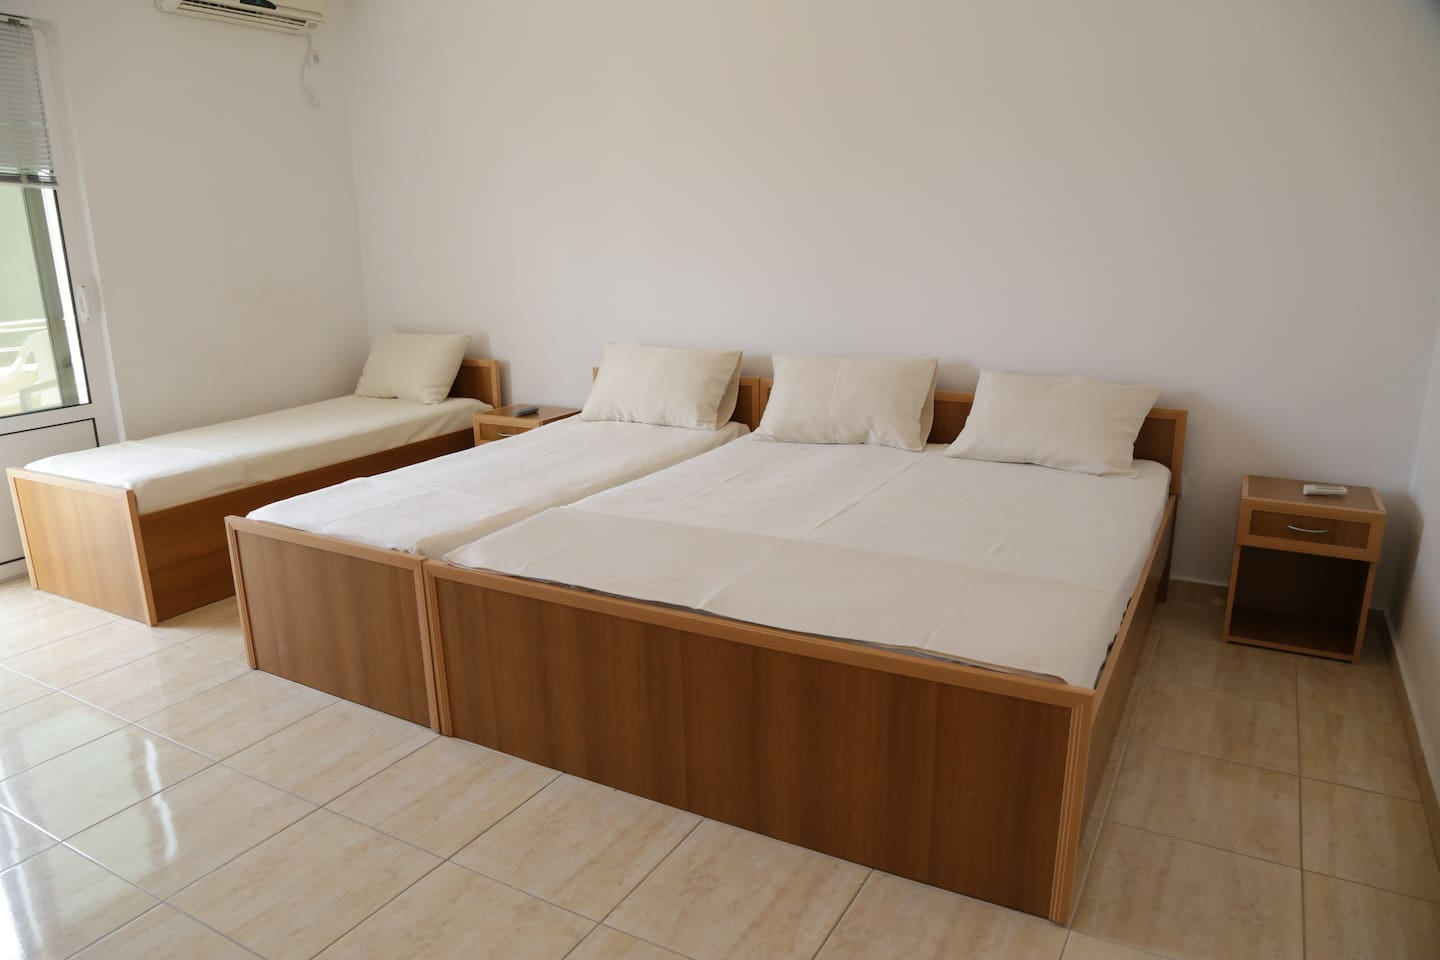 Room for four persons with one double  and two single beds with nightstands and balcony overlooking garden